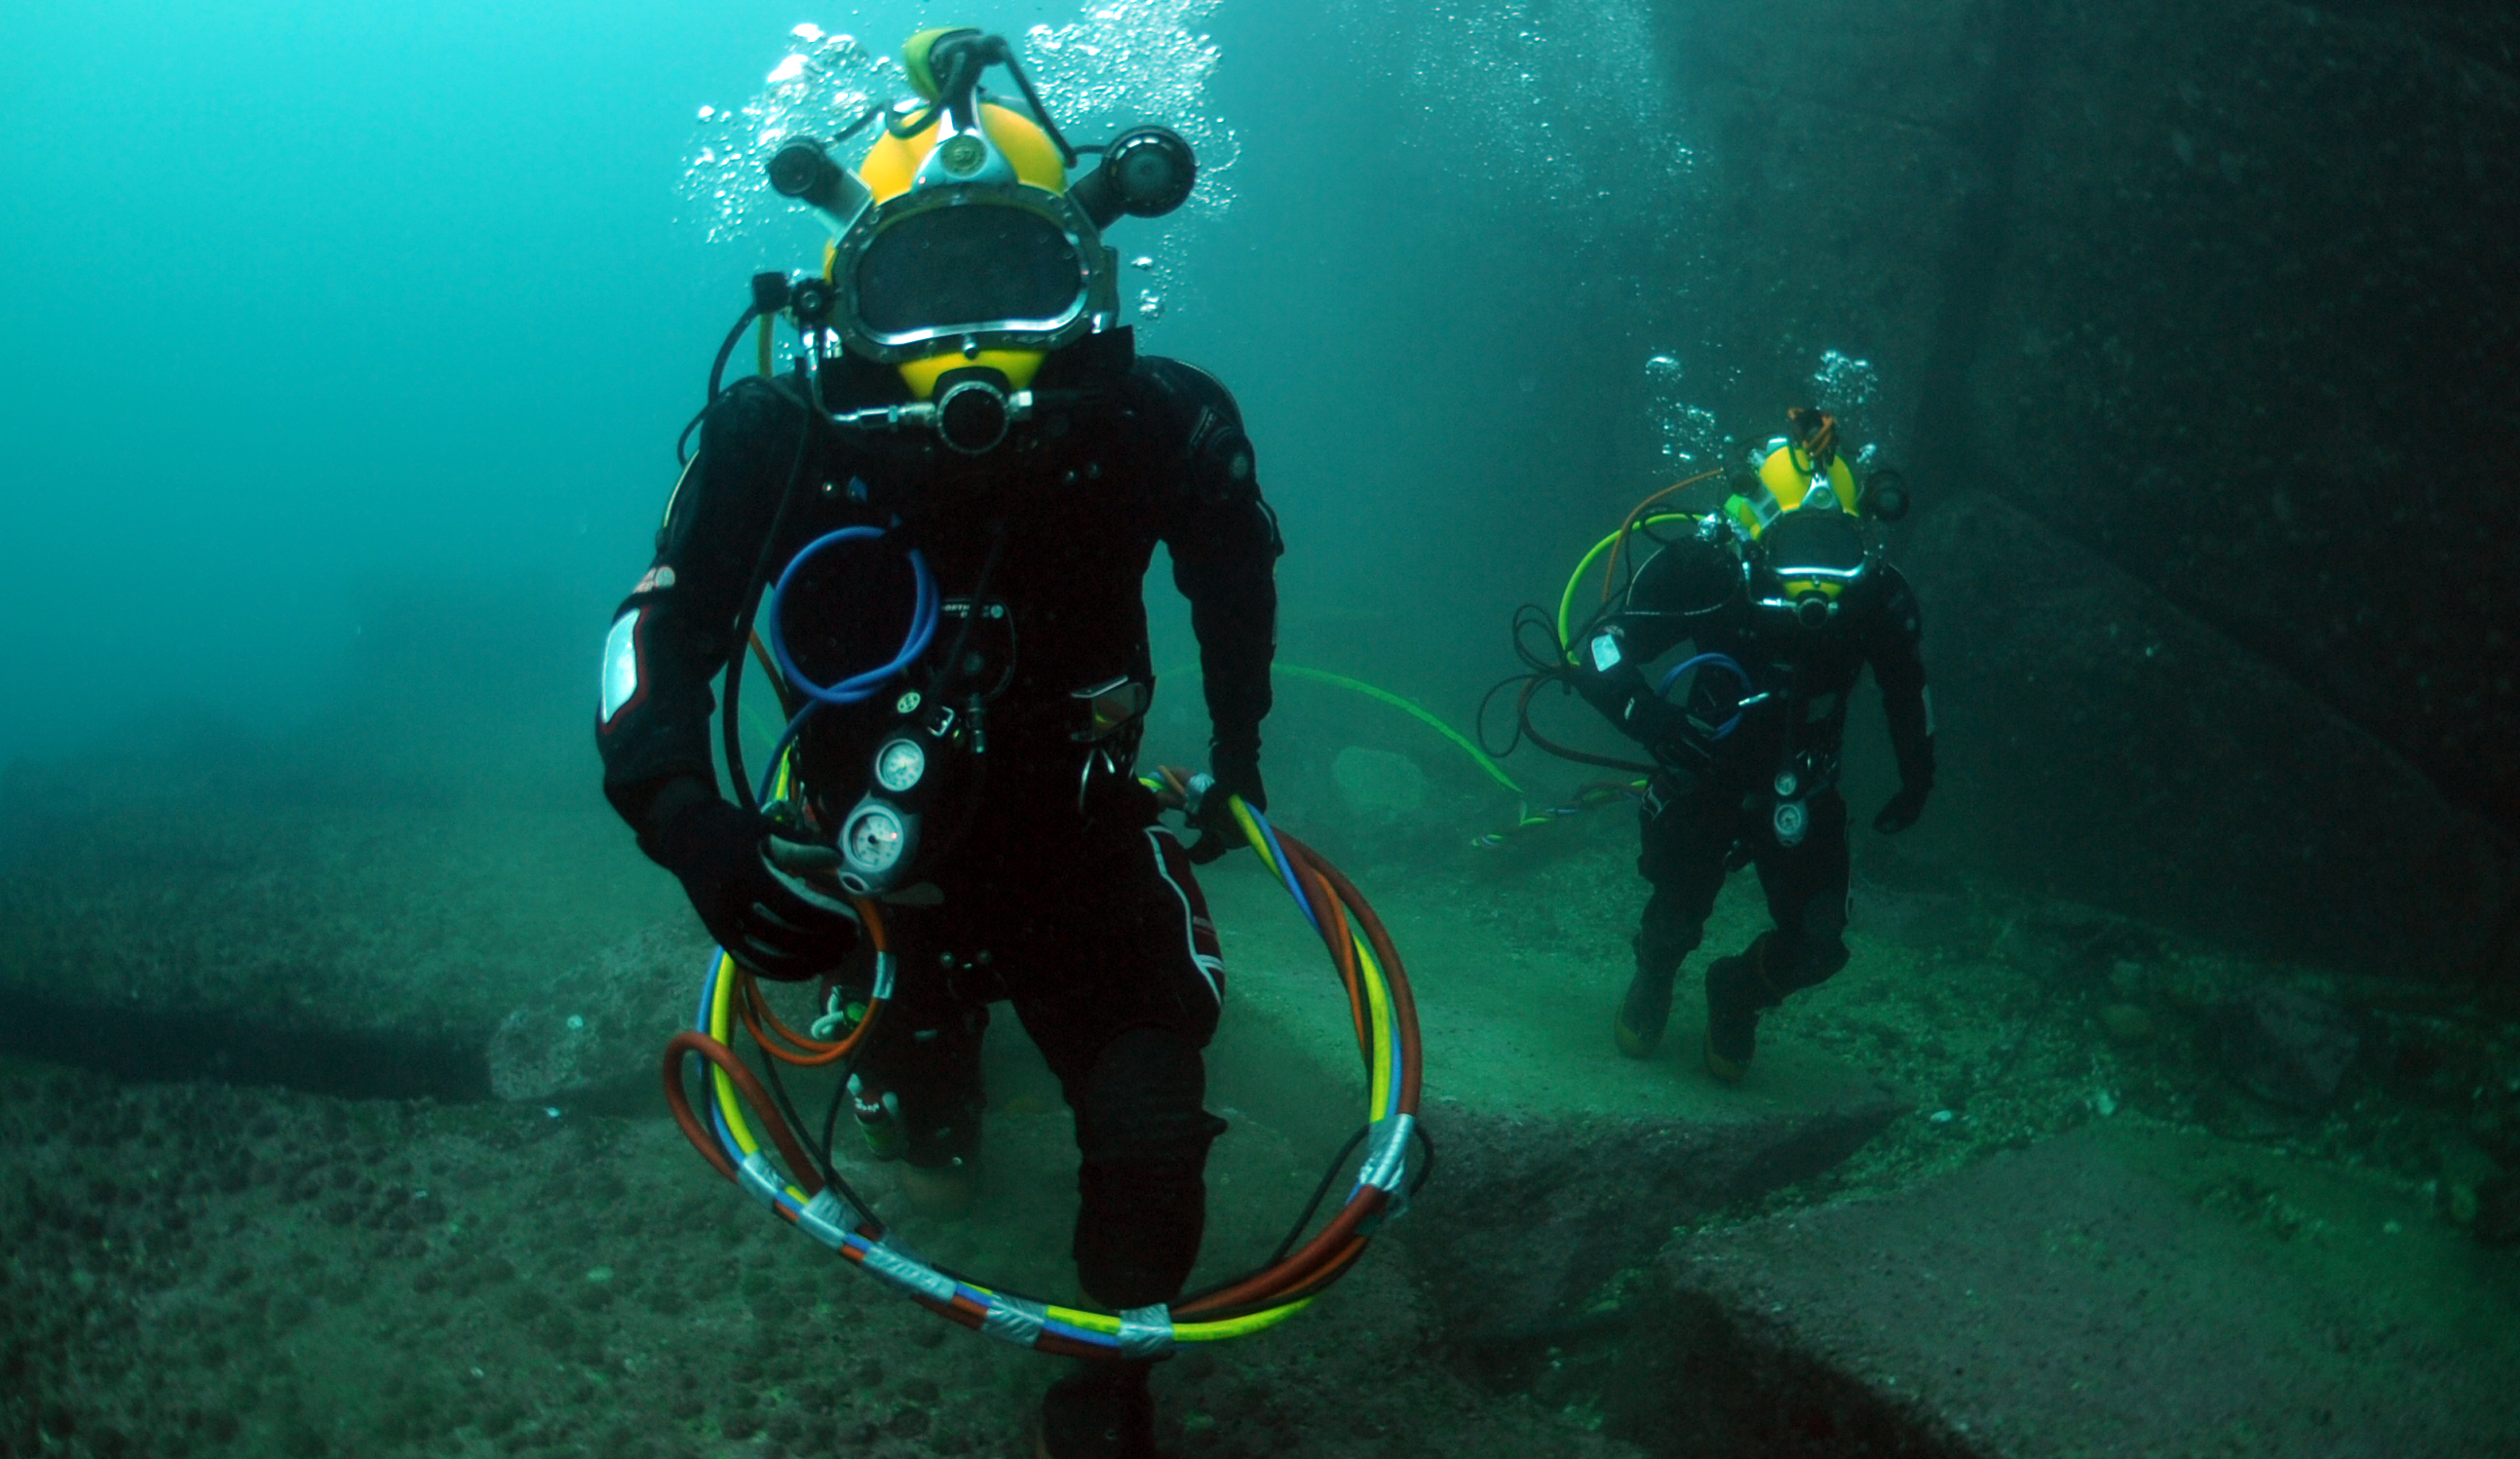 dating a commercial diver Jon lindbergh (diver) photo galleries, news, relationships and more on spokeo.